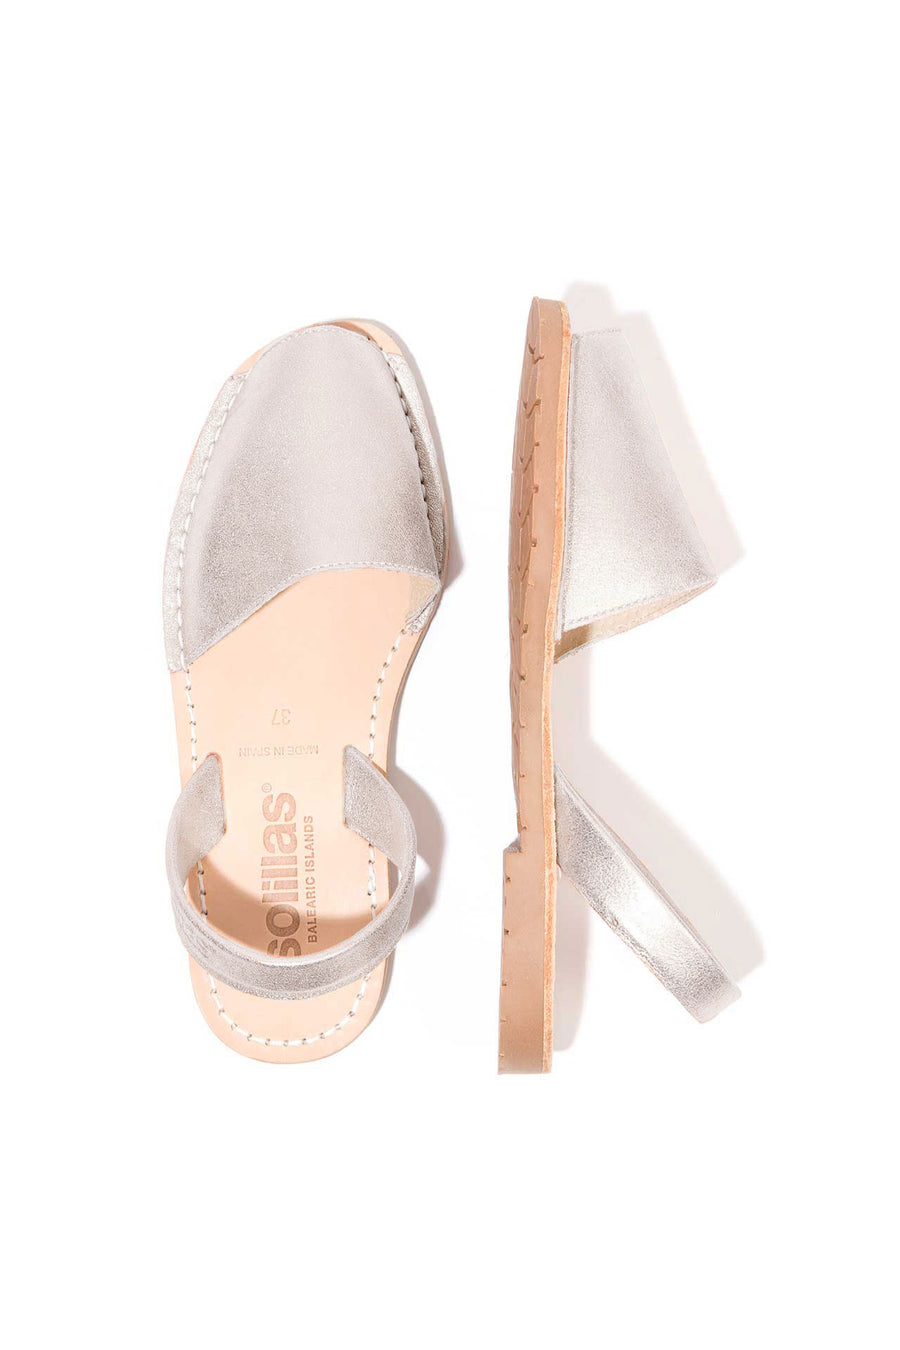 Lluna - Dusted Leather Menorcan sandals